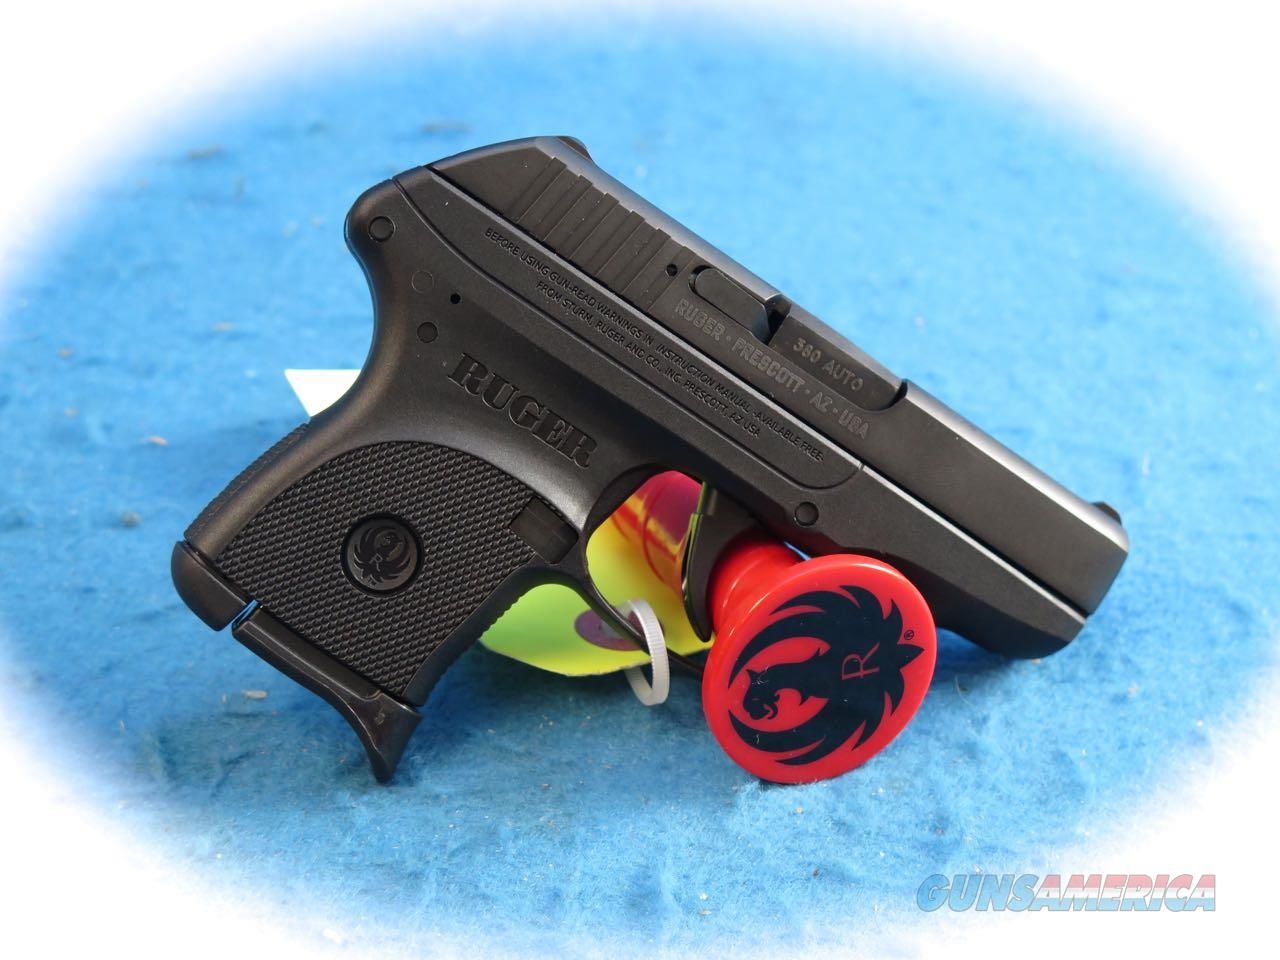 Ruger LCP  .380 ACP Semi Auto Pistol Model 3701 **New** On Sale  Guns > Pistols > Ruger Semi-Auto Pistols > LCP